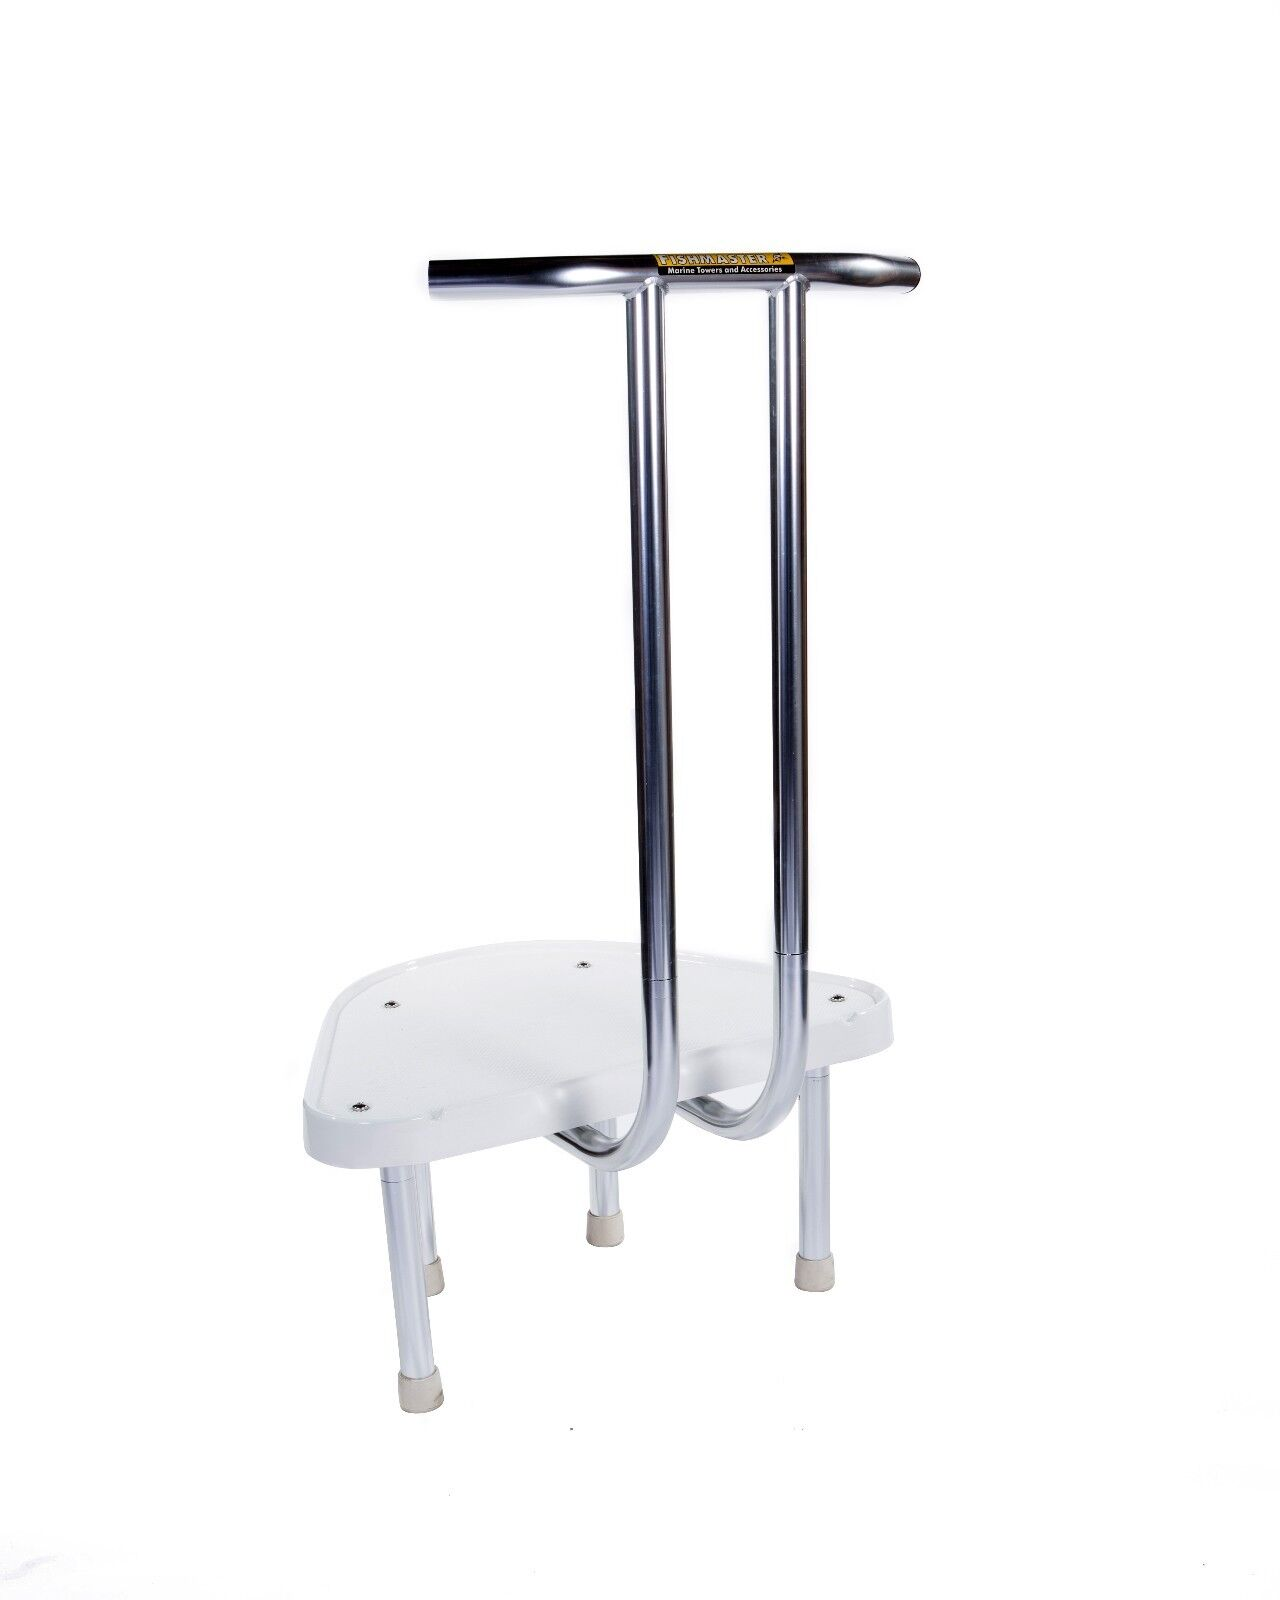 Boating  Casting Platform for Fishing from Boat- Fishmaster  for cheap